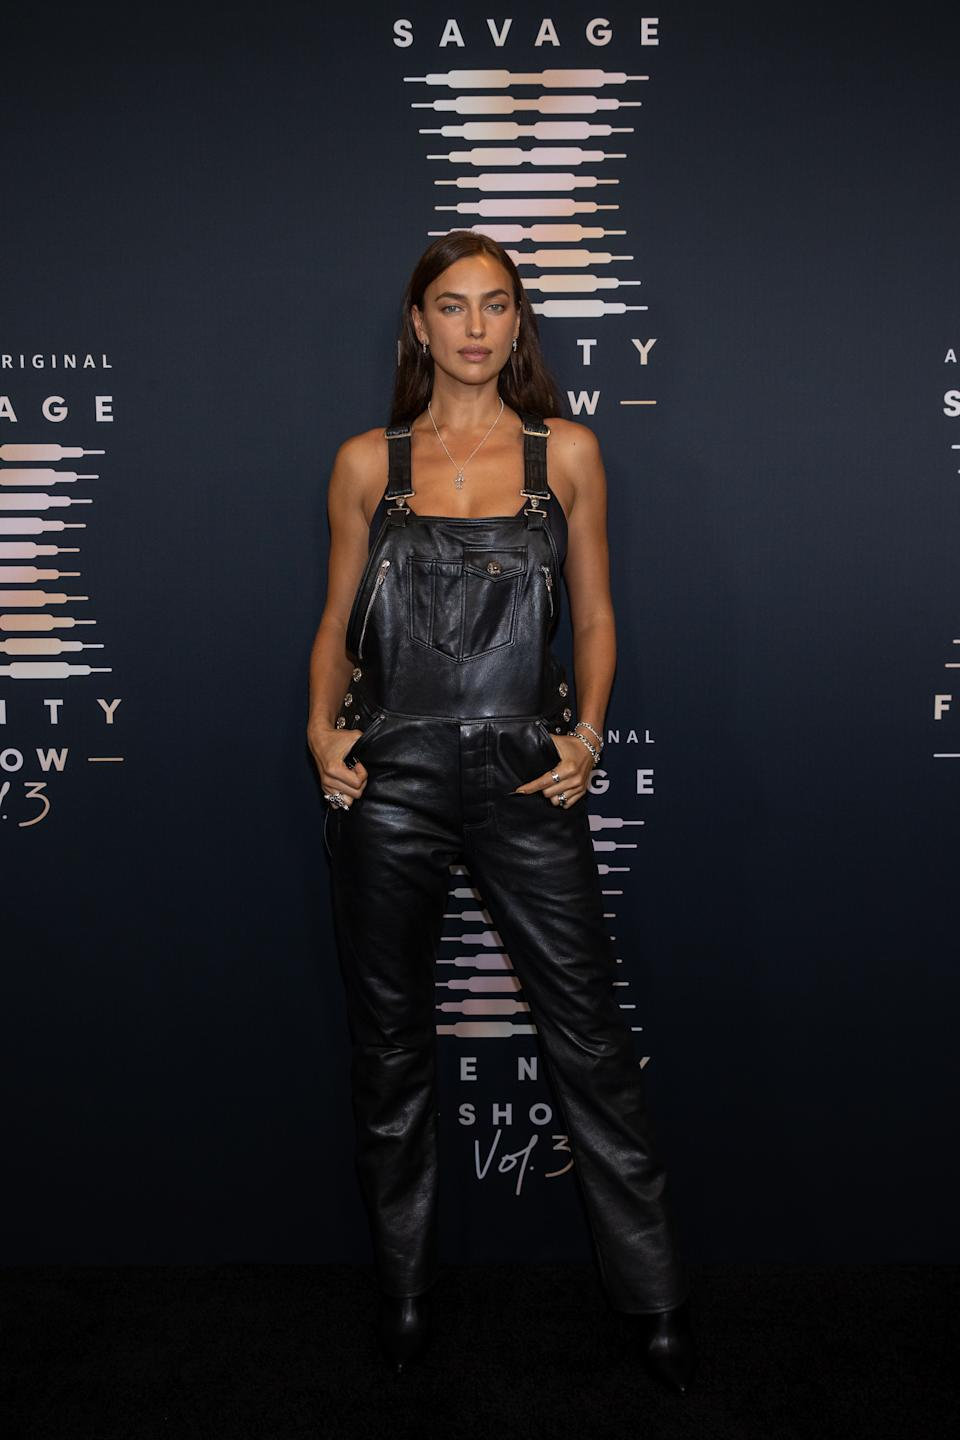 LOS ANGELES, CALIFORNIA - SEPTEMBER 22: In this image released on September 22, Irina Shayk attends Rihanna's Savage X Fenty Show Vol. 3 presented by Amazon Prime Video at The Westin Bonaventure Hotel & Suites in Los Angeles, California; and broadcast on September 24, 2021. (Photo by Emma McIntyre/Getty Images for Rihanna's Savage X Fenty Show Vol. 3 Presented by Amazon Prime Video)